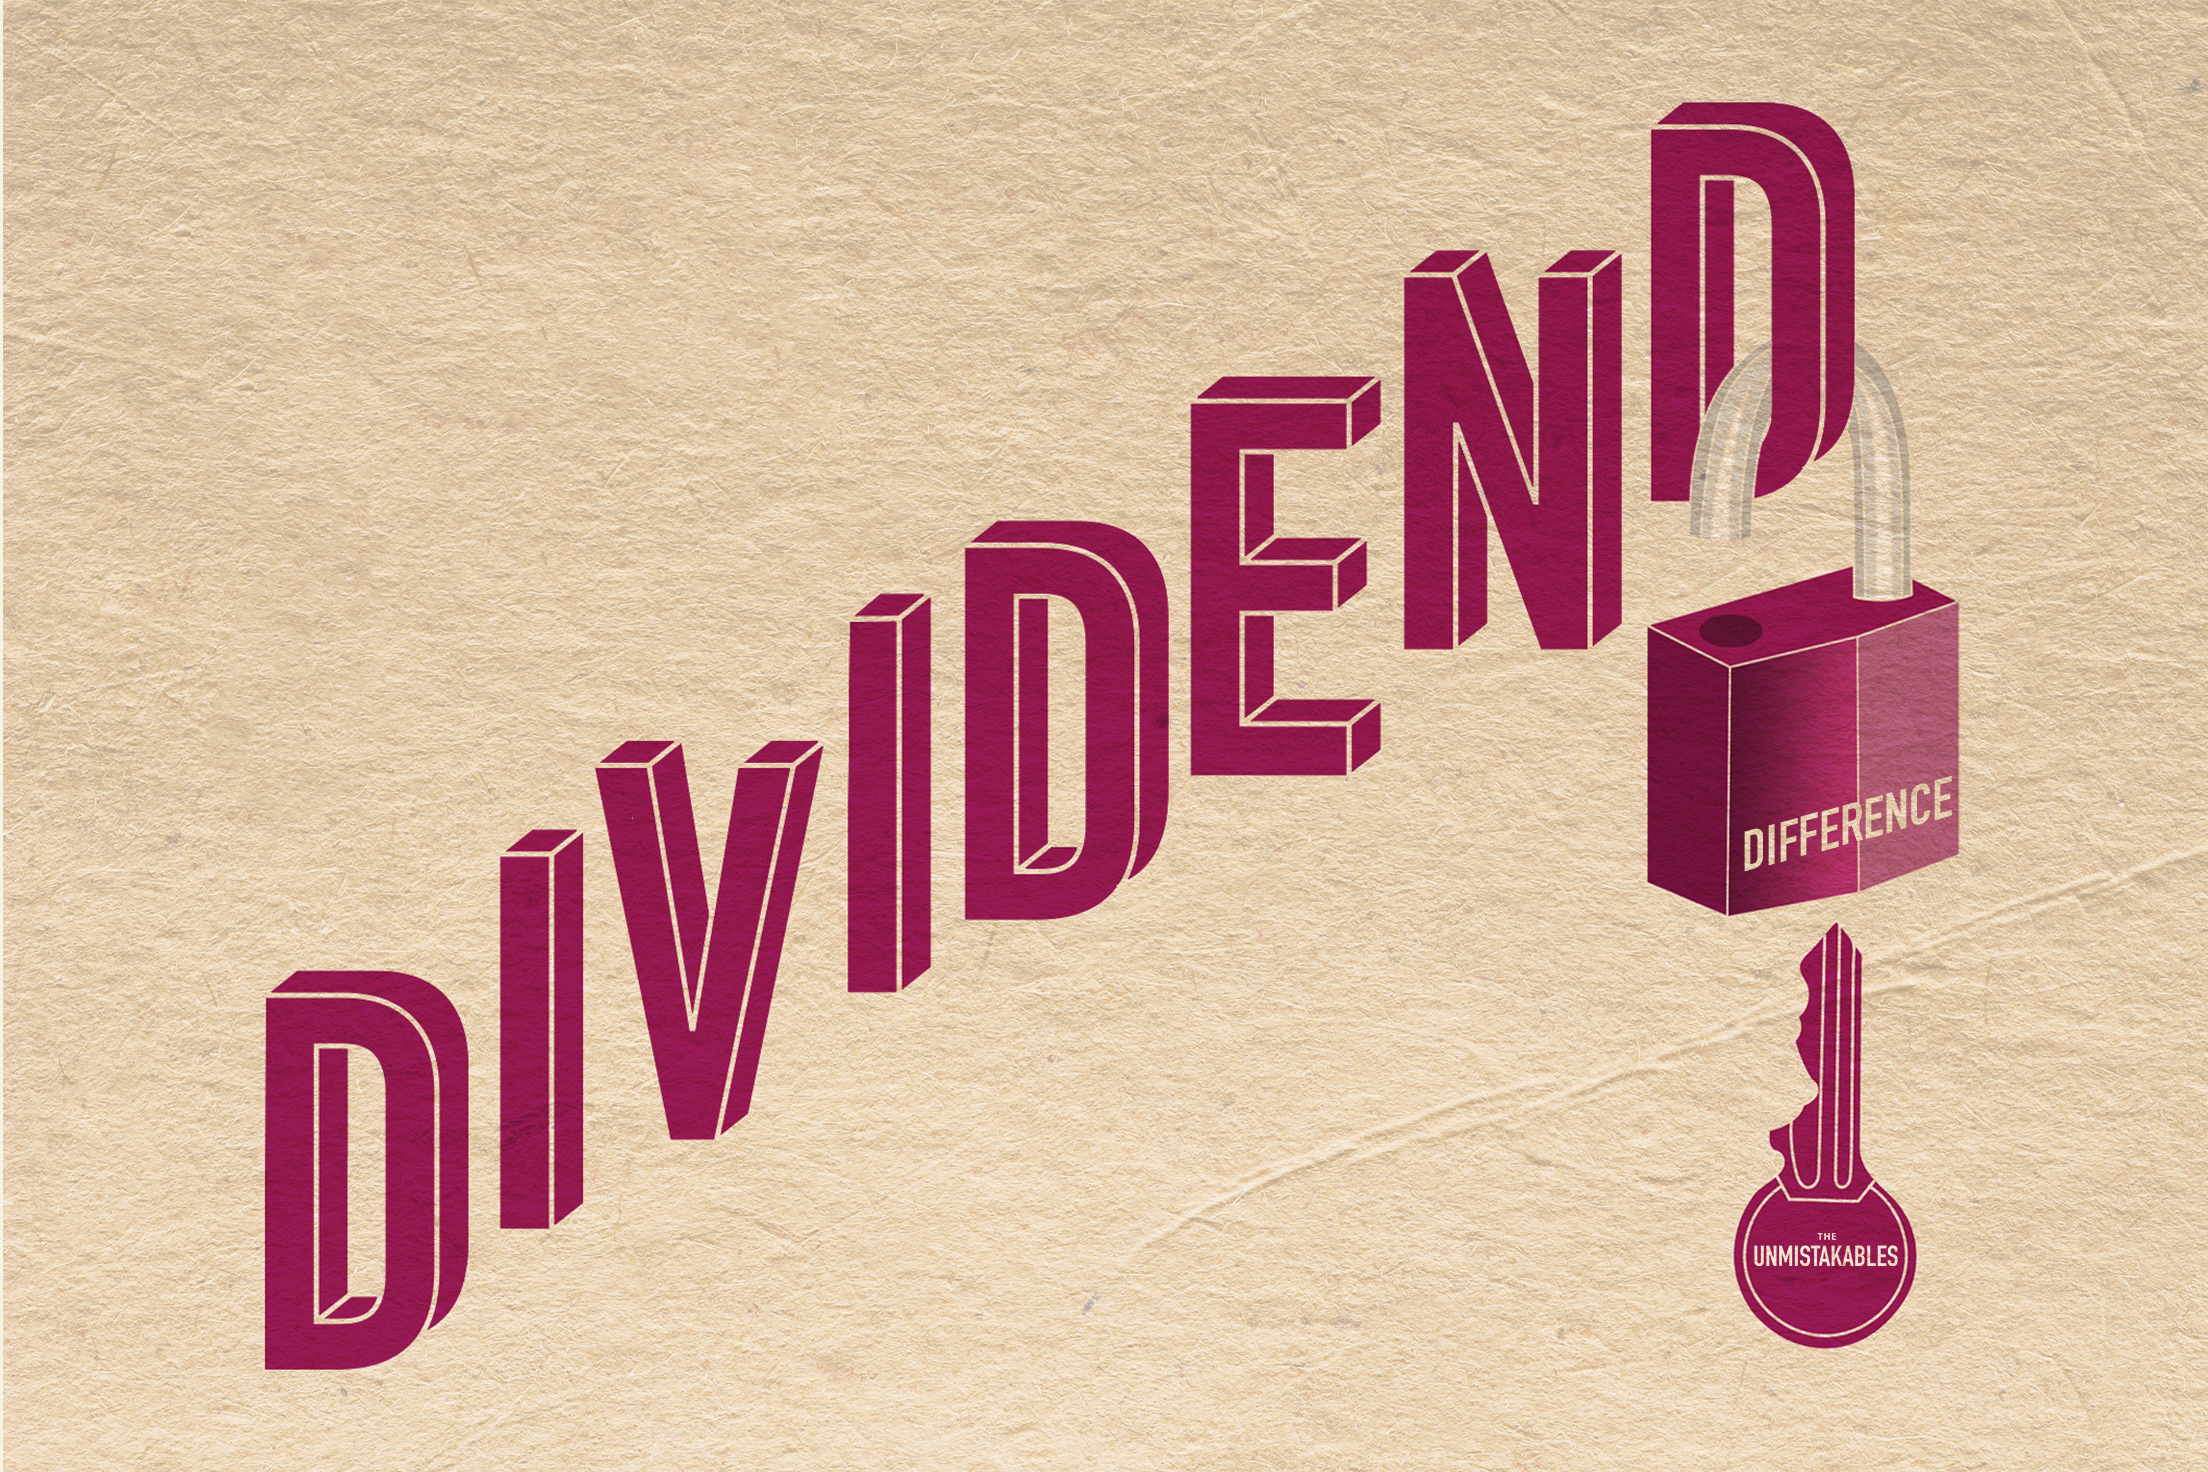 Dividend - difference image - paper-2.jpg